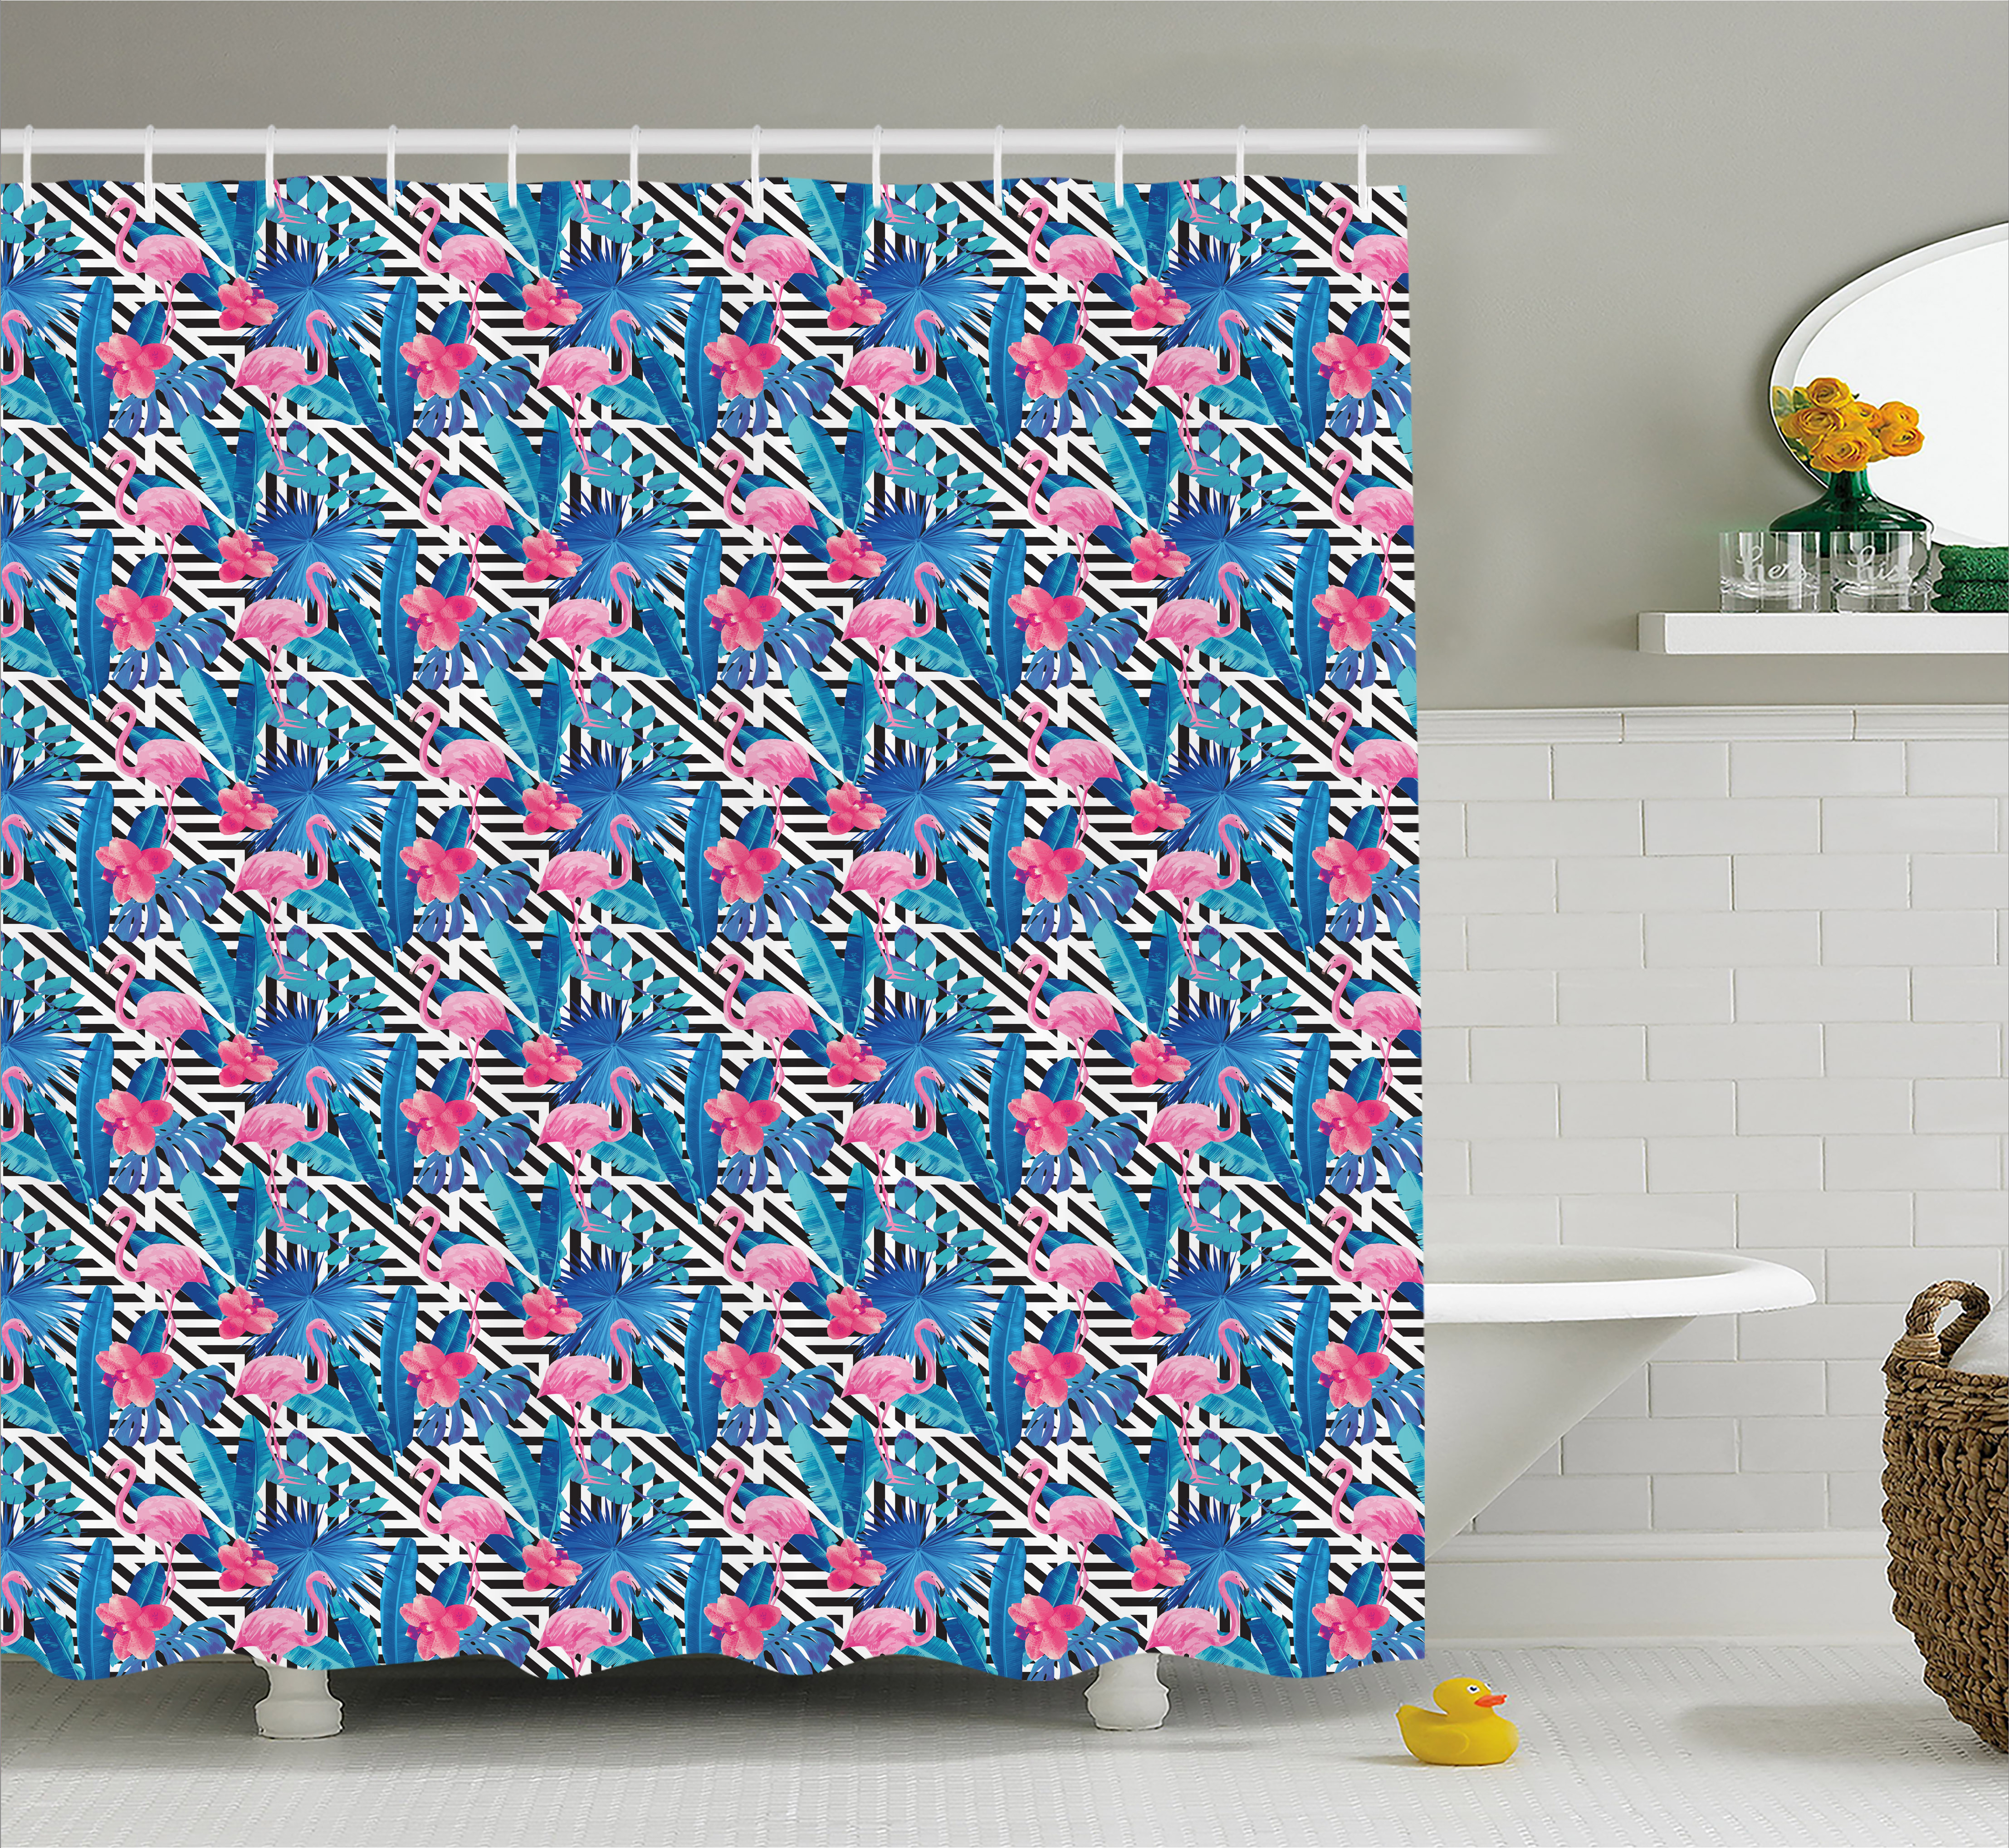 Banana Leaf Shower Curtain, Watercolor Tropic Pink Flamingos and Orchid with Blue Floral Plant Jungle Palm, Fabric Bathroom Set with Hooks, 69W X 84L Inches Extra Long, Multicolor, by Ambesonne